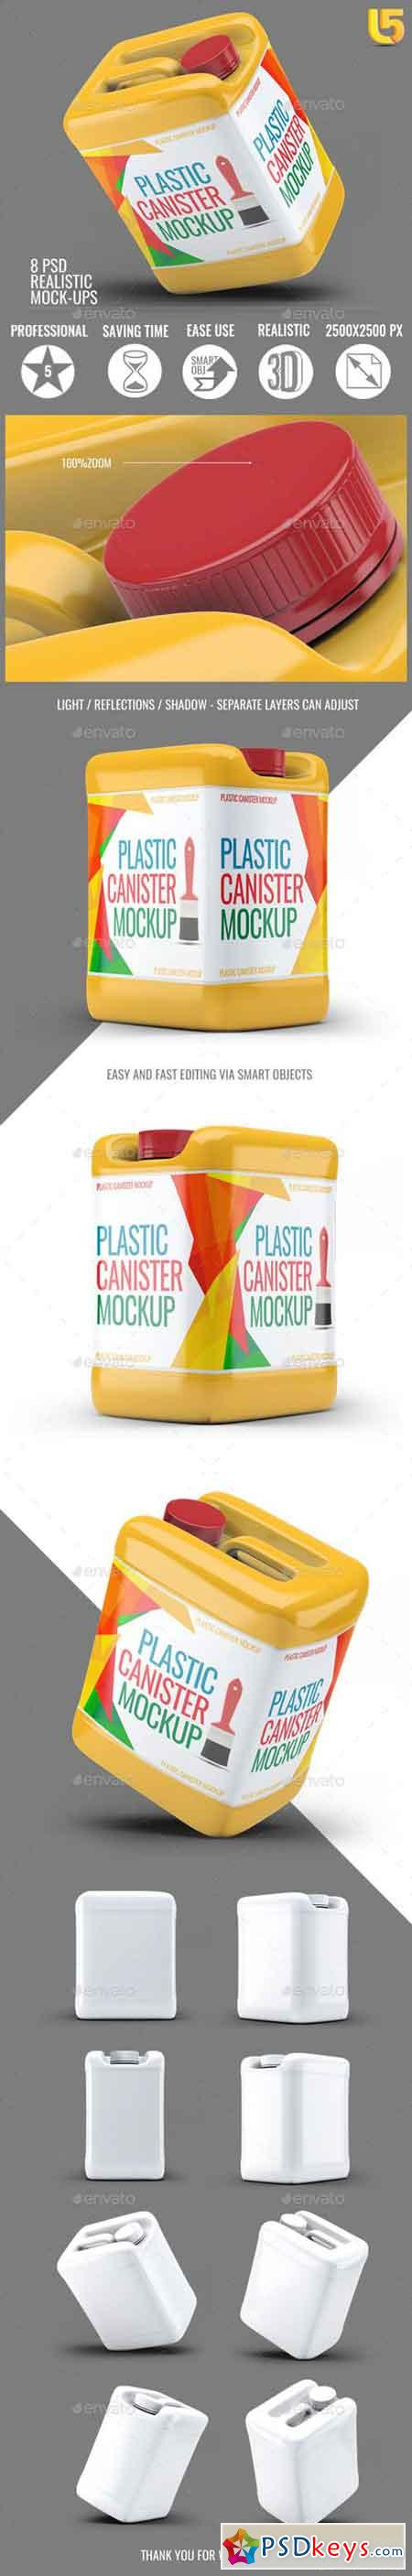 Plastic Canister Mock-Up 21074422